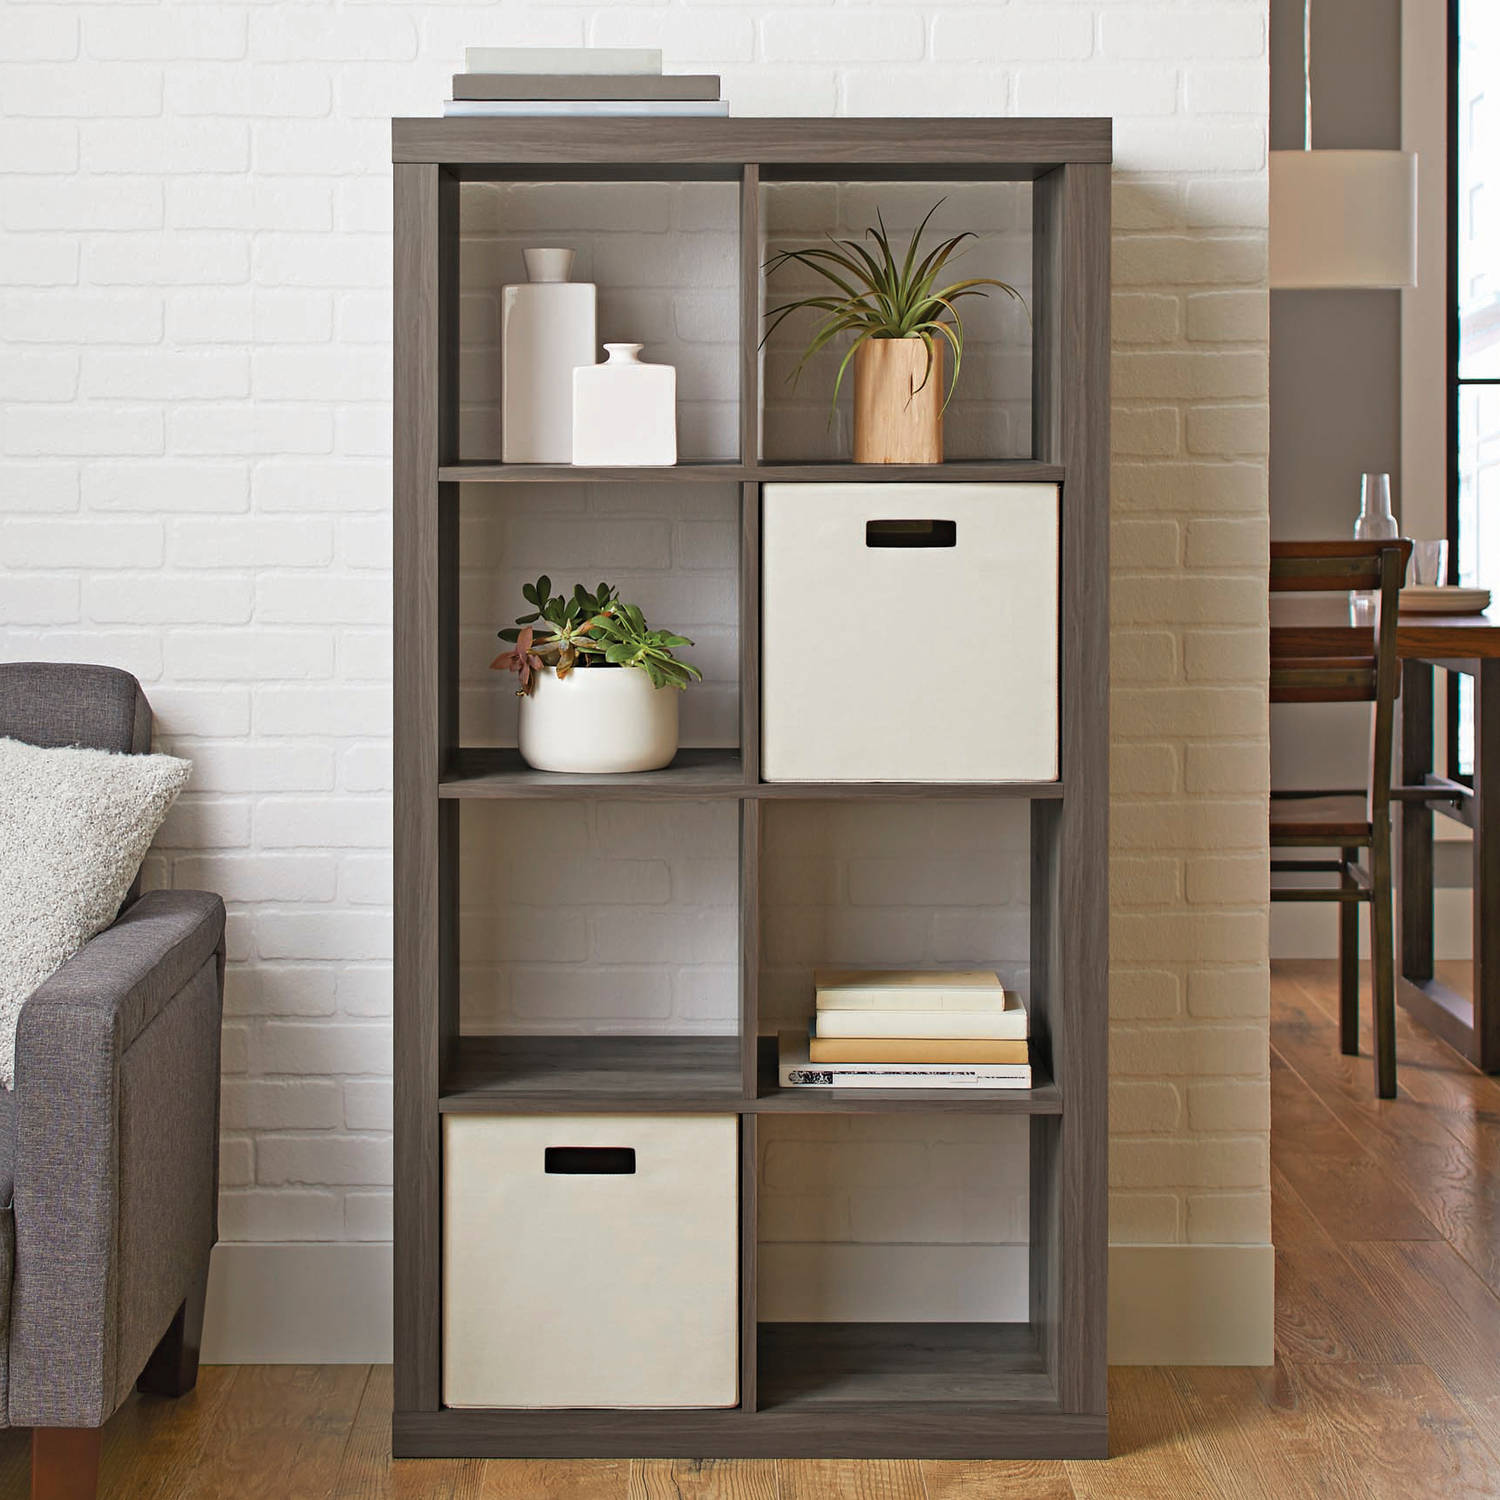 Bhg Homes: Better Homes And Gardens 8-Cube Organizer, Multiple Colors